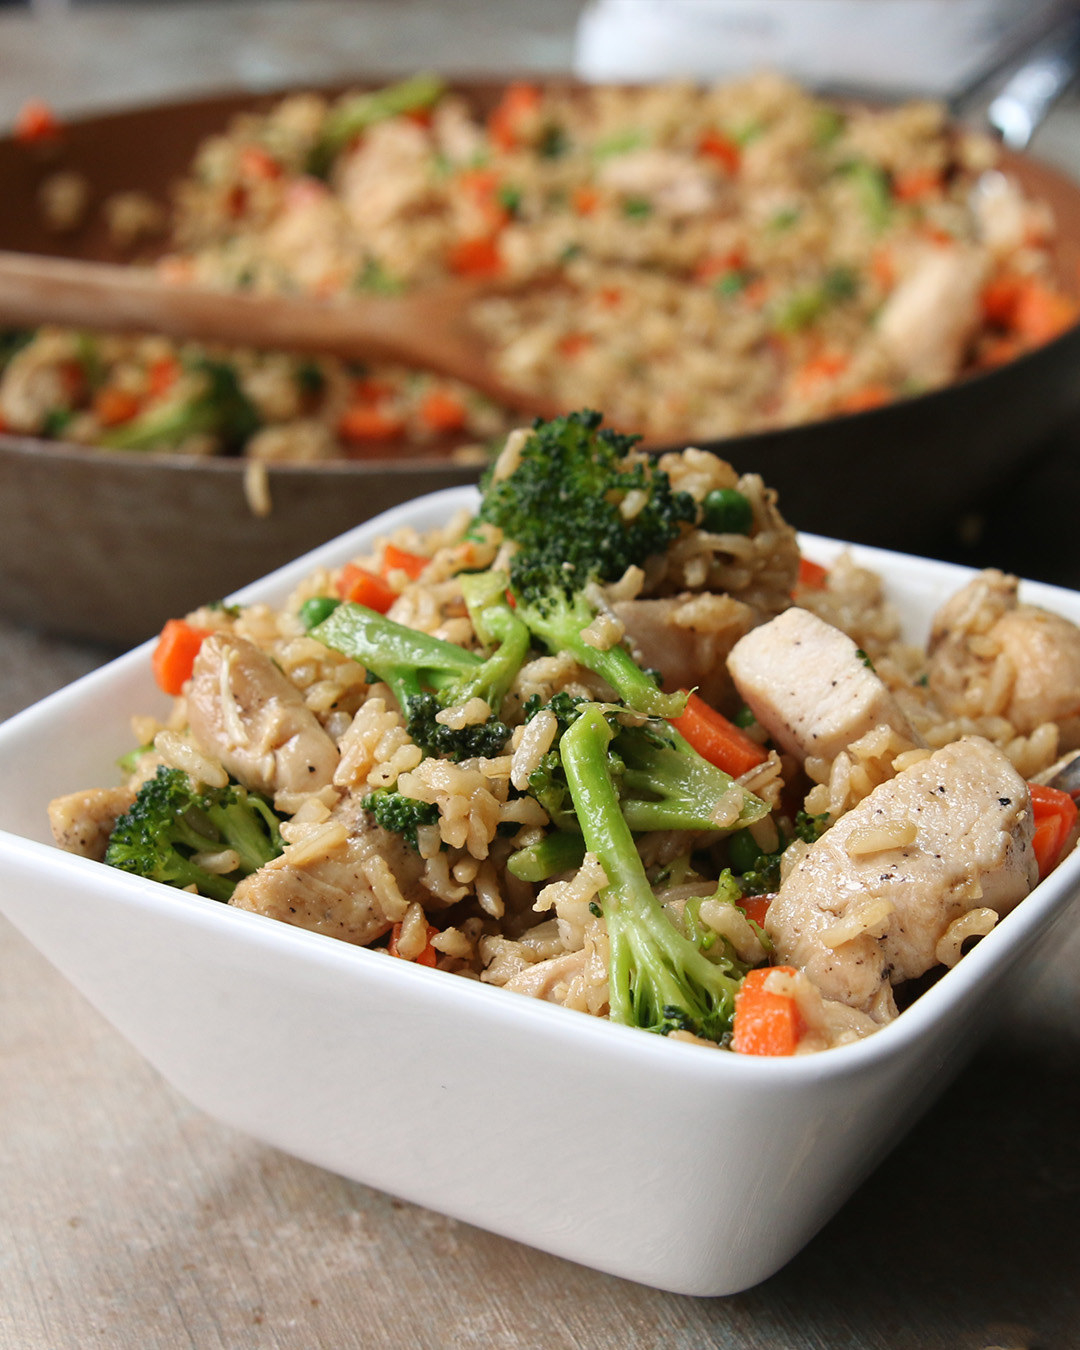 All you need is:– Sesame oil– Garlic– Chicken breasts, cubed (2)– Salt– Pepper– Carrots– Broccoli– Brown rice– Frozen peas– Soy sauceFind the recipe here.